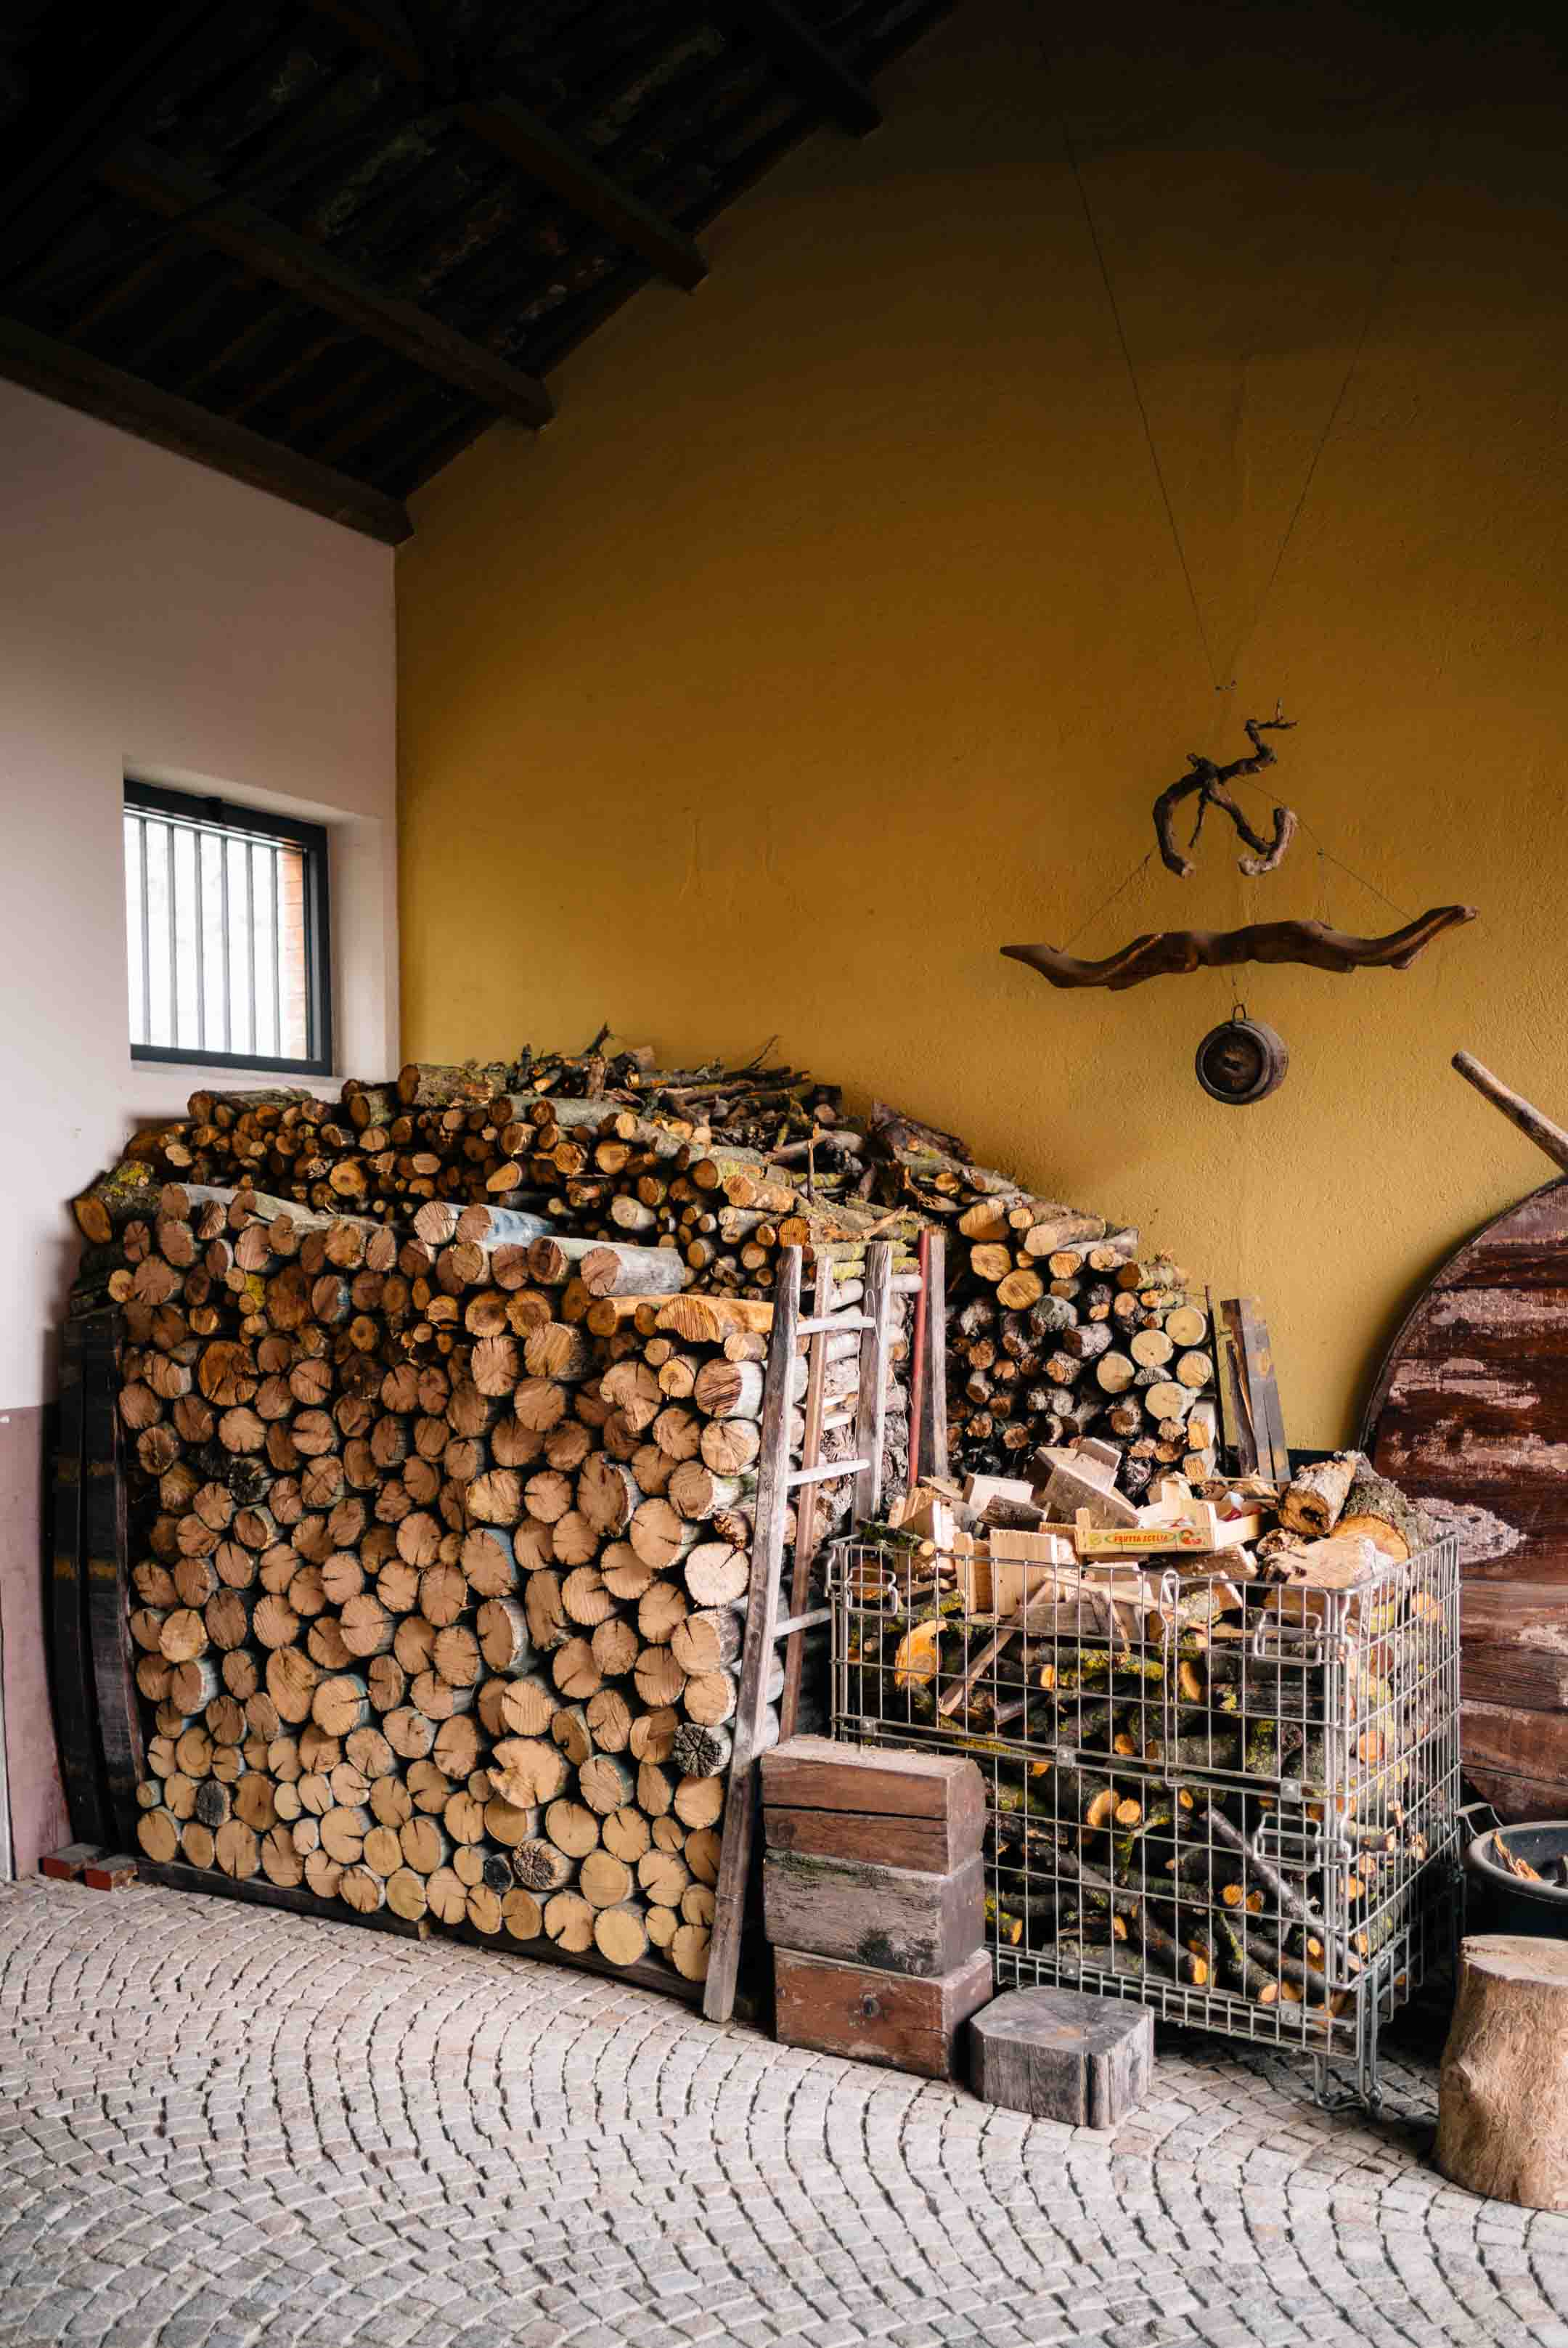 Firewood at legendary winery Bartolo Mascarello in Piedmont, one of the best wineries in piedmont, see The Taste SF's visit.